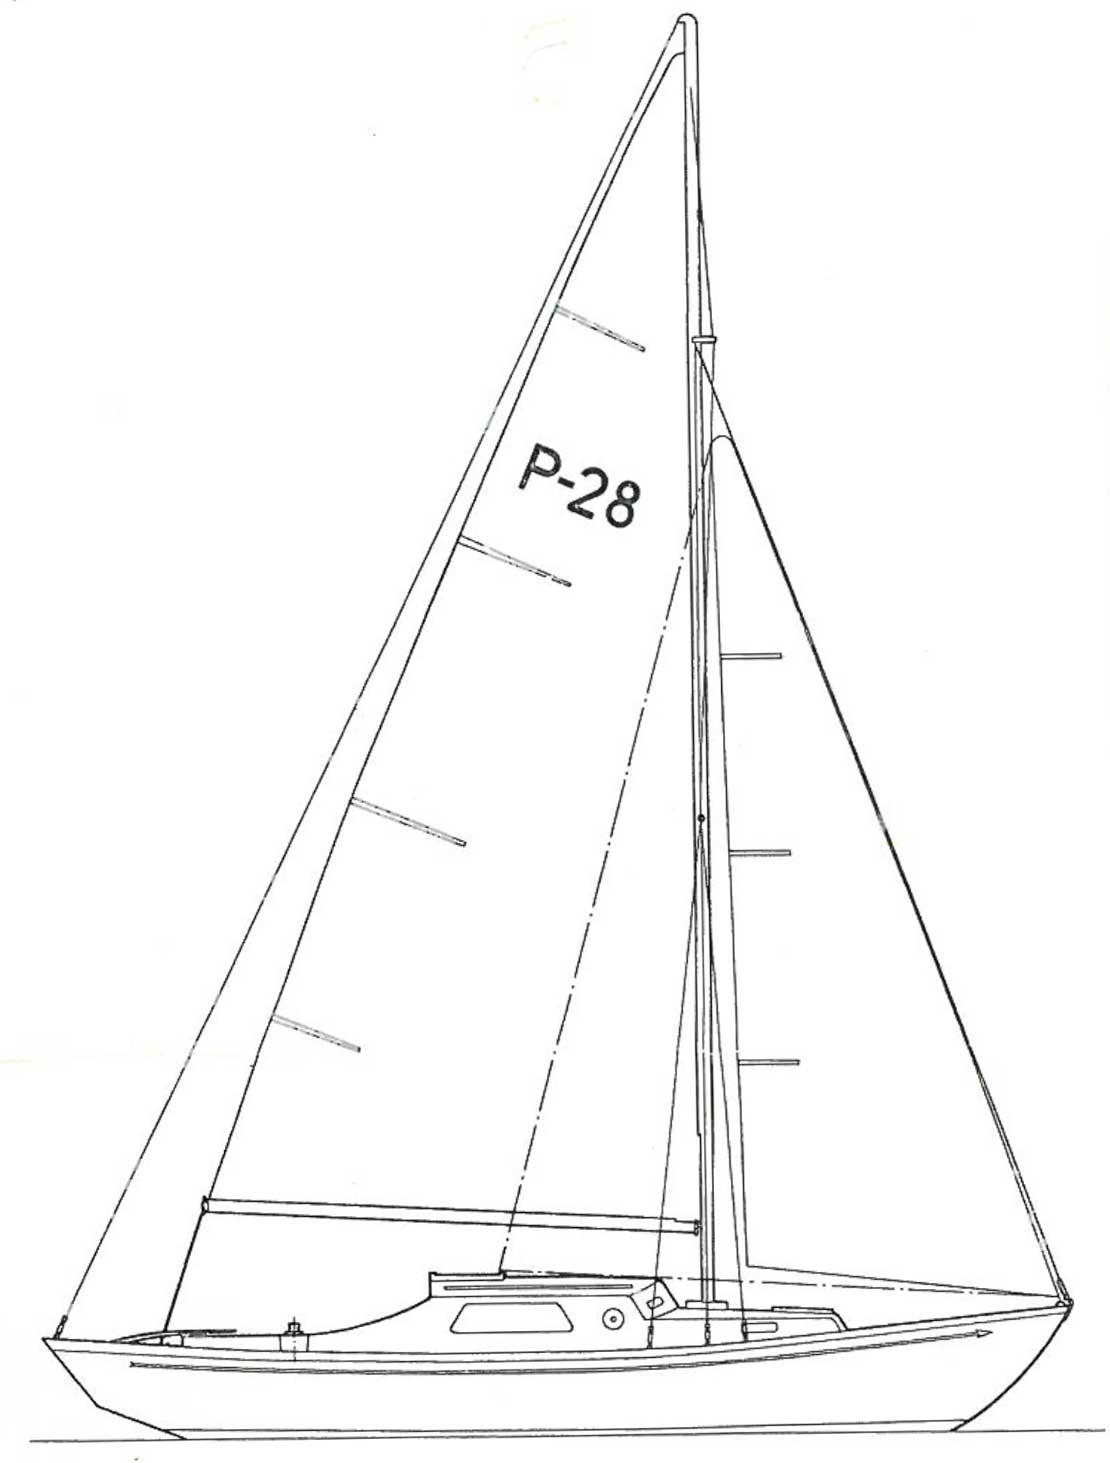 p 28 E Scow Johnson p 28 files and documents